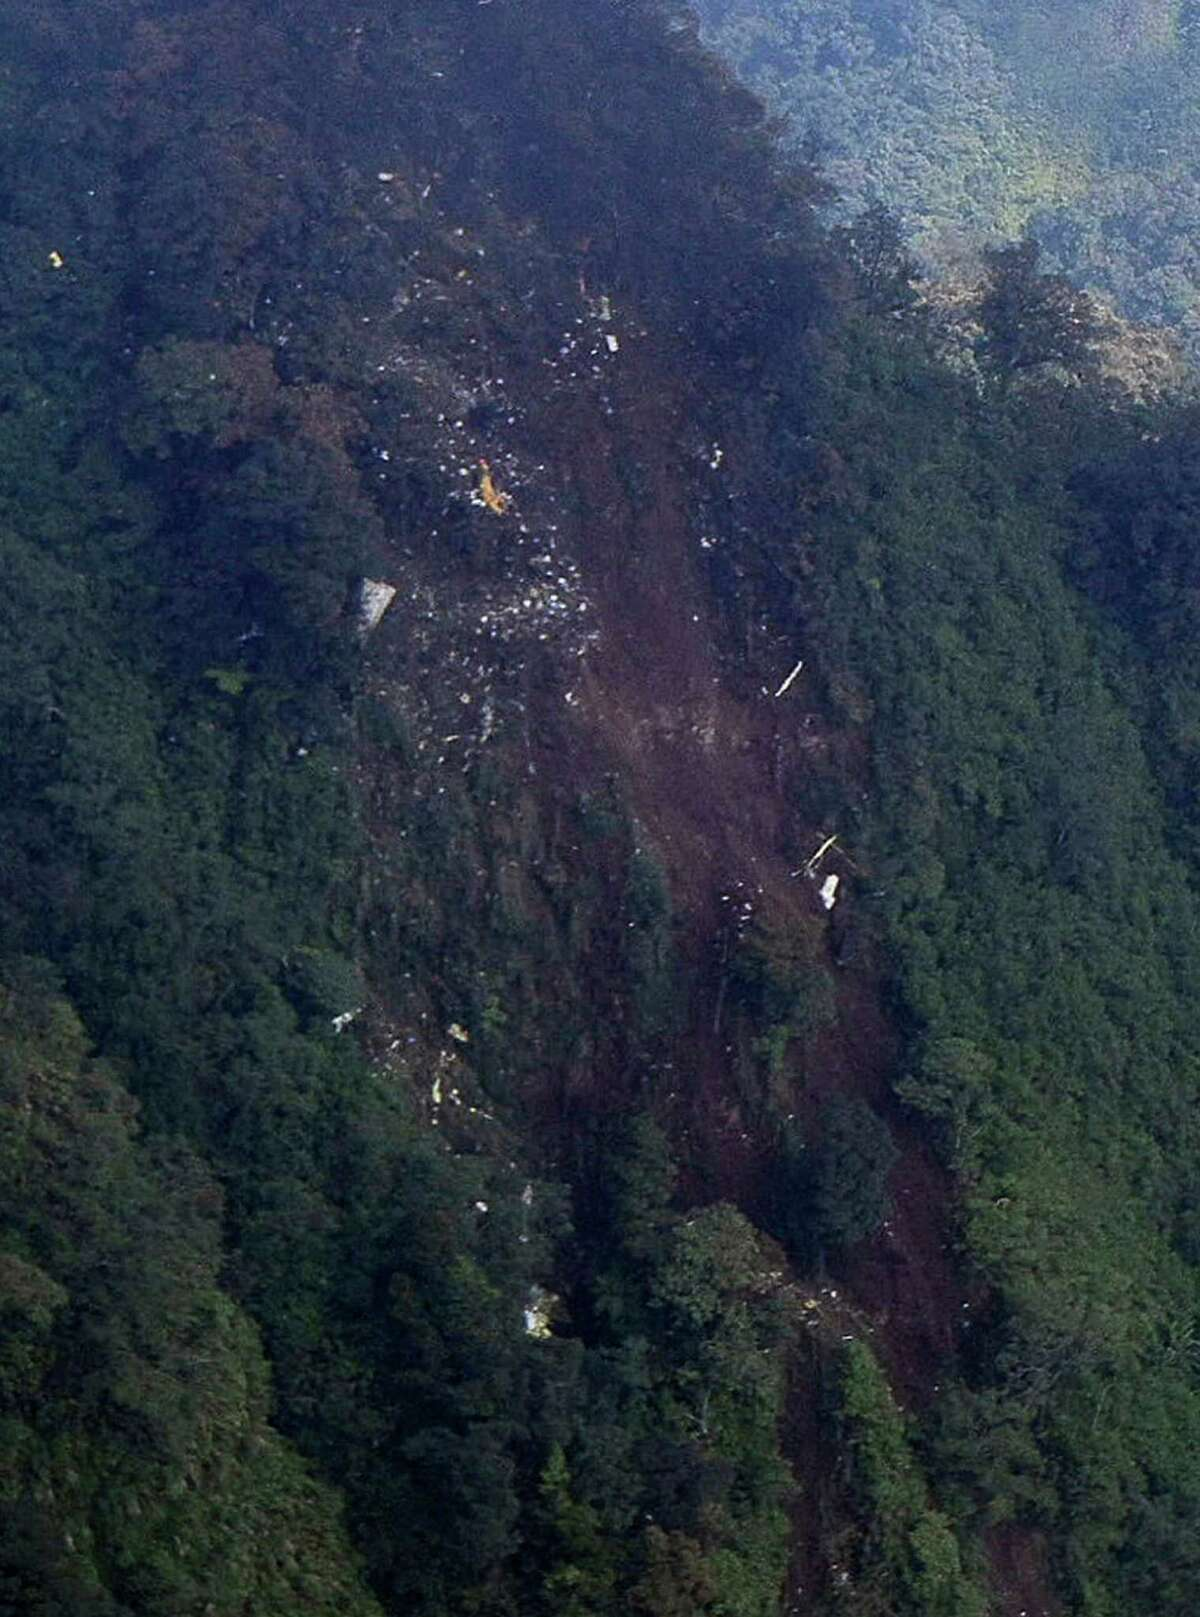 In this picture released by Indonesian Air Force, the wreckage of a missing Sukhoi Superjet-100 are scattered on the mountainside in Bogor, West Java, Indonesia, Thursday. The new Russian-made passenger plane disappeared Wednesday during a demonstration flight with 47 people on board.